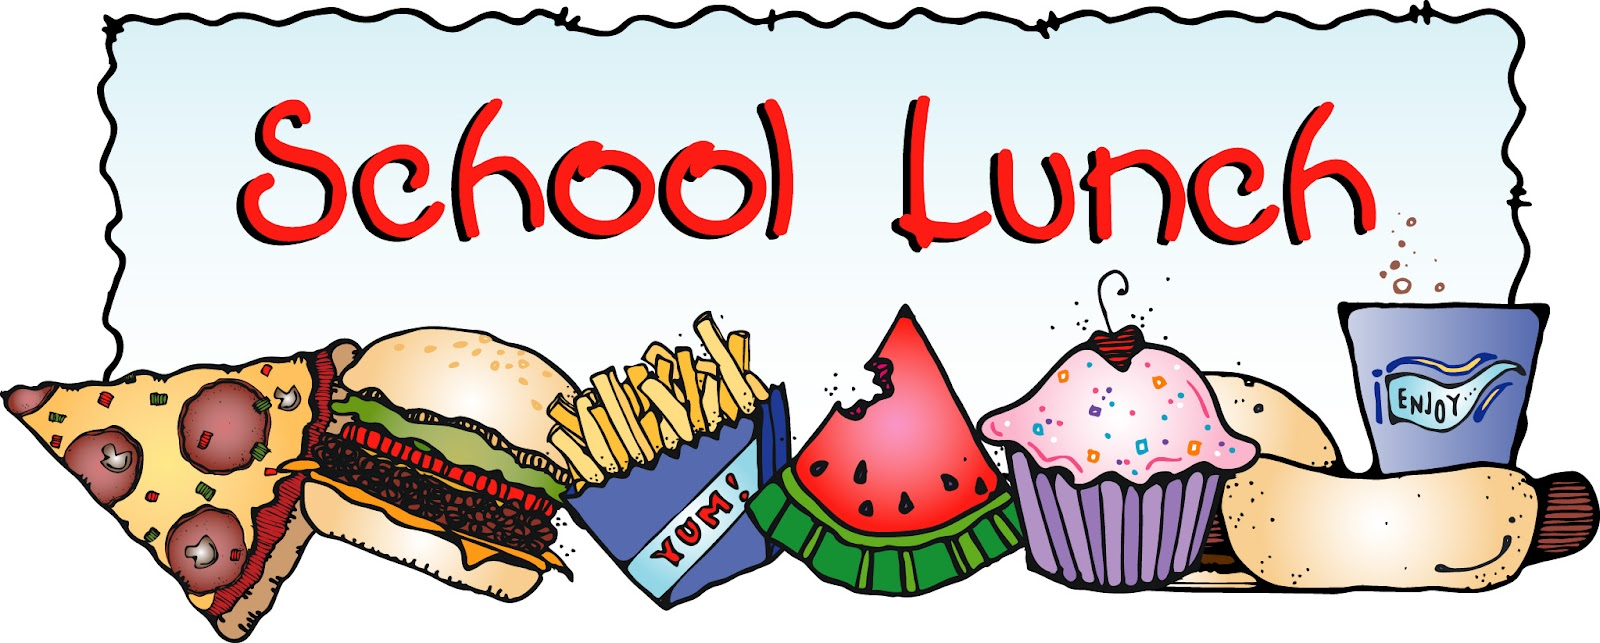 1600x643 School Lunch Clip Art Clipart Cliparts For You